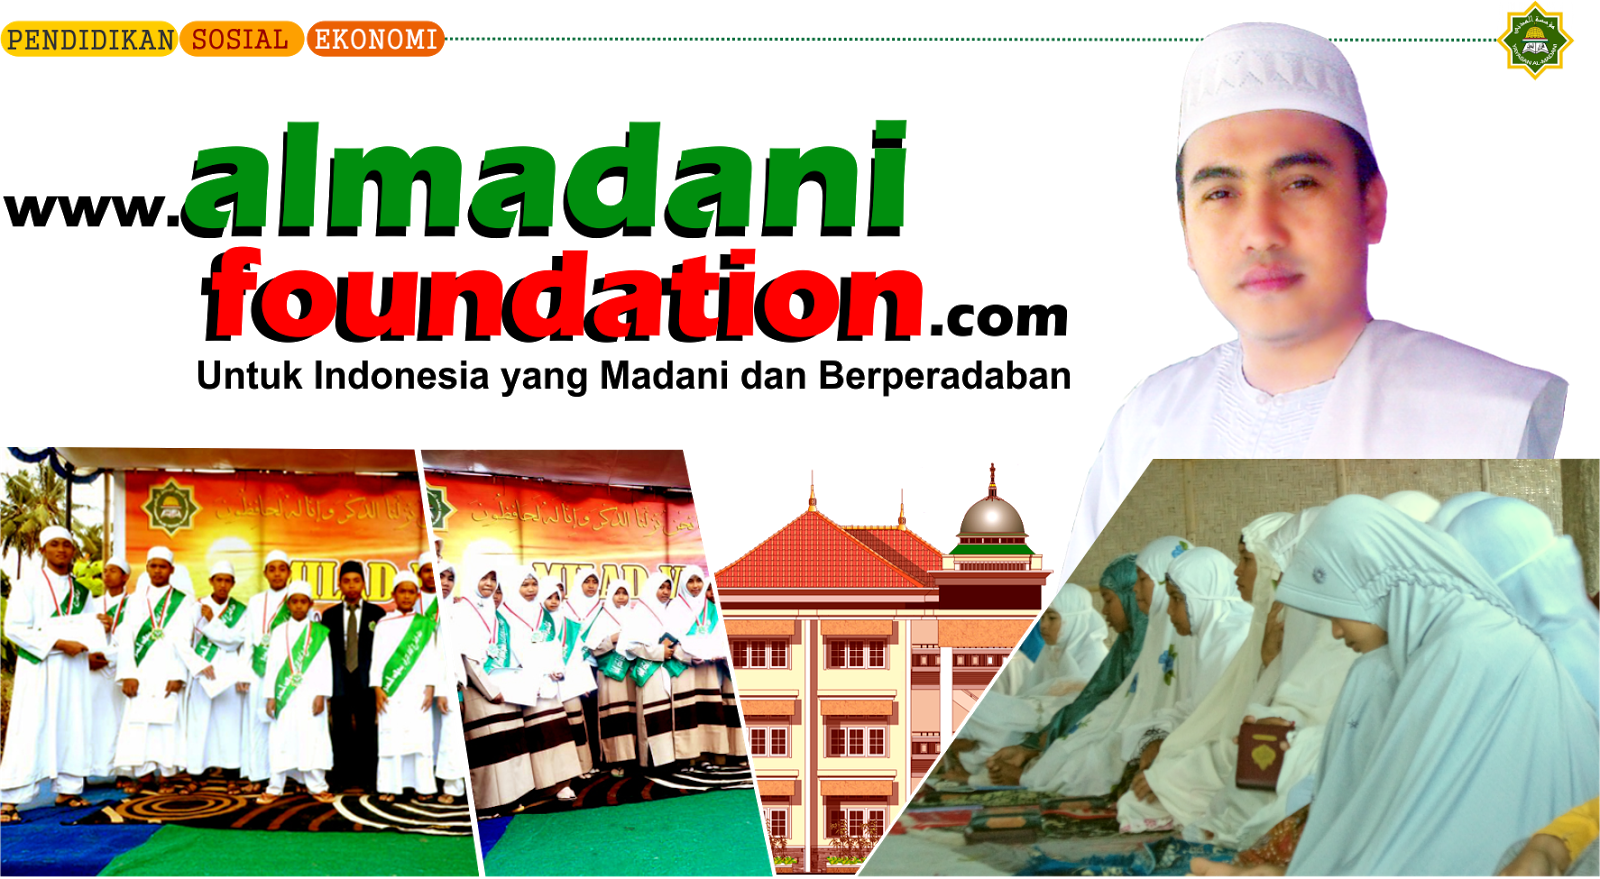 Almadani Foundation